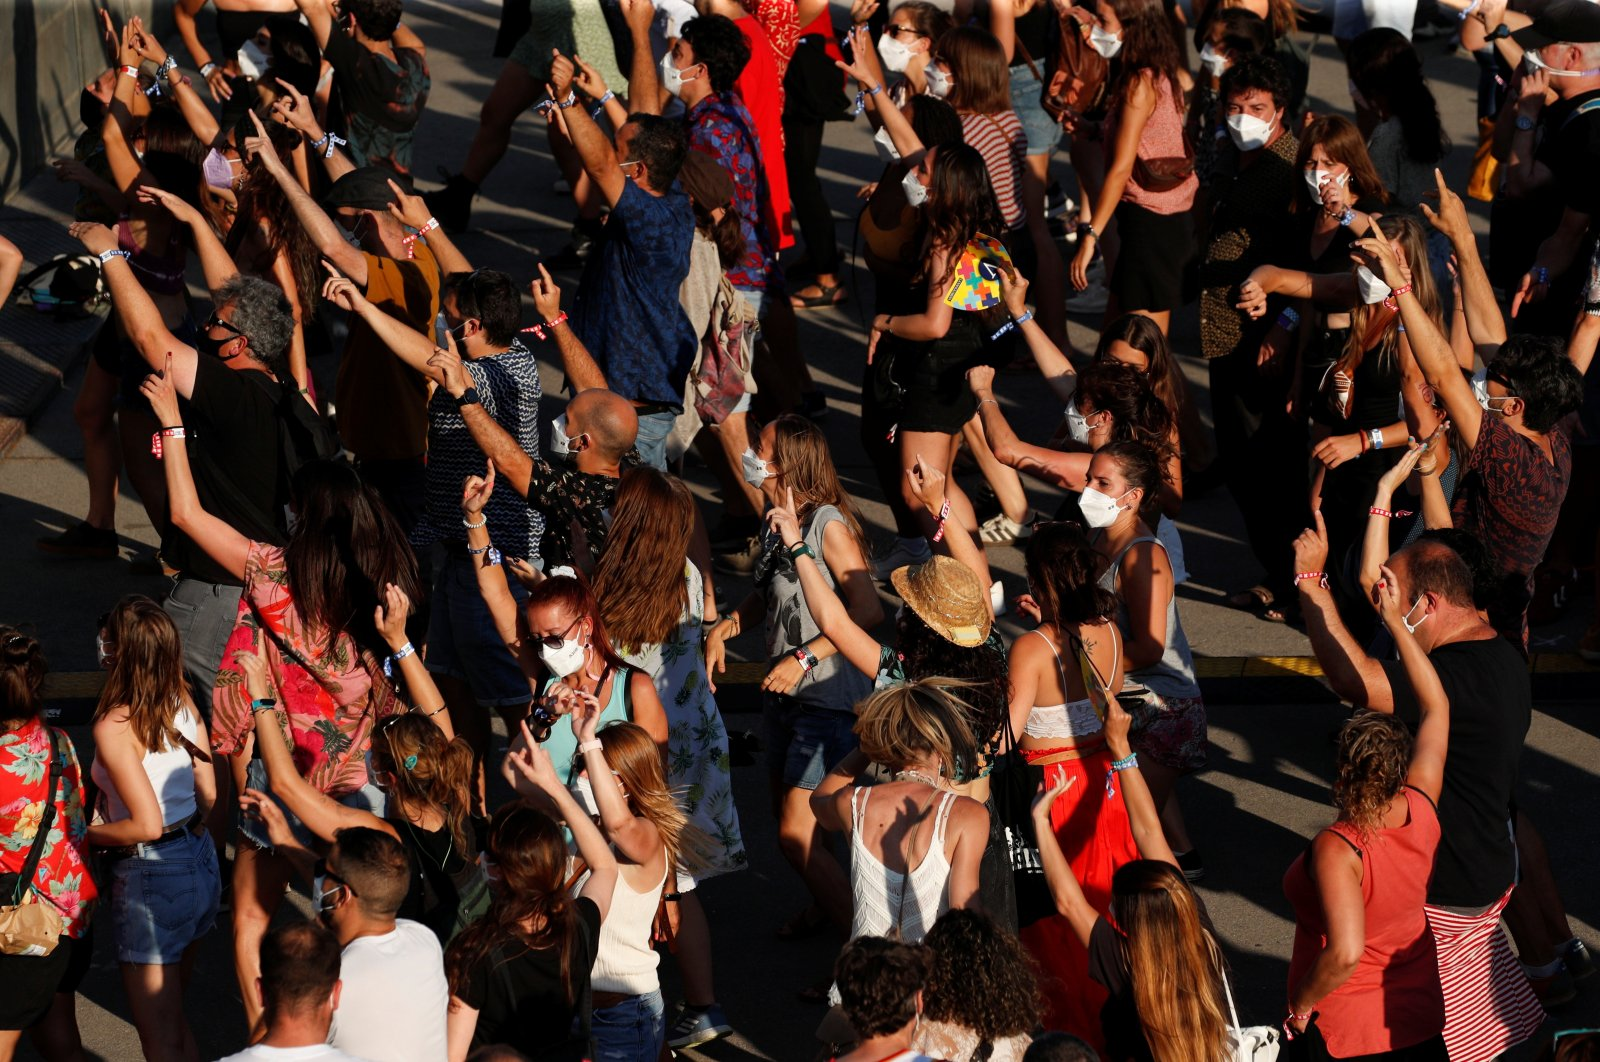 People attend the Cruilla music festival, after passing a COVID-19 antigen test, in Barcelona, Spain, July 10, 2021. (Reuters Photo)